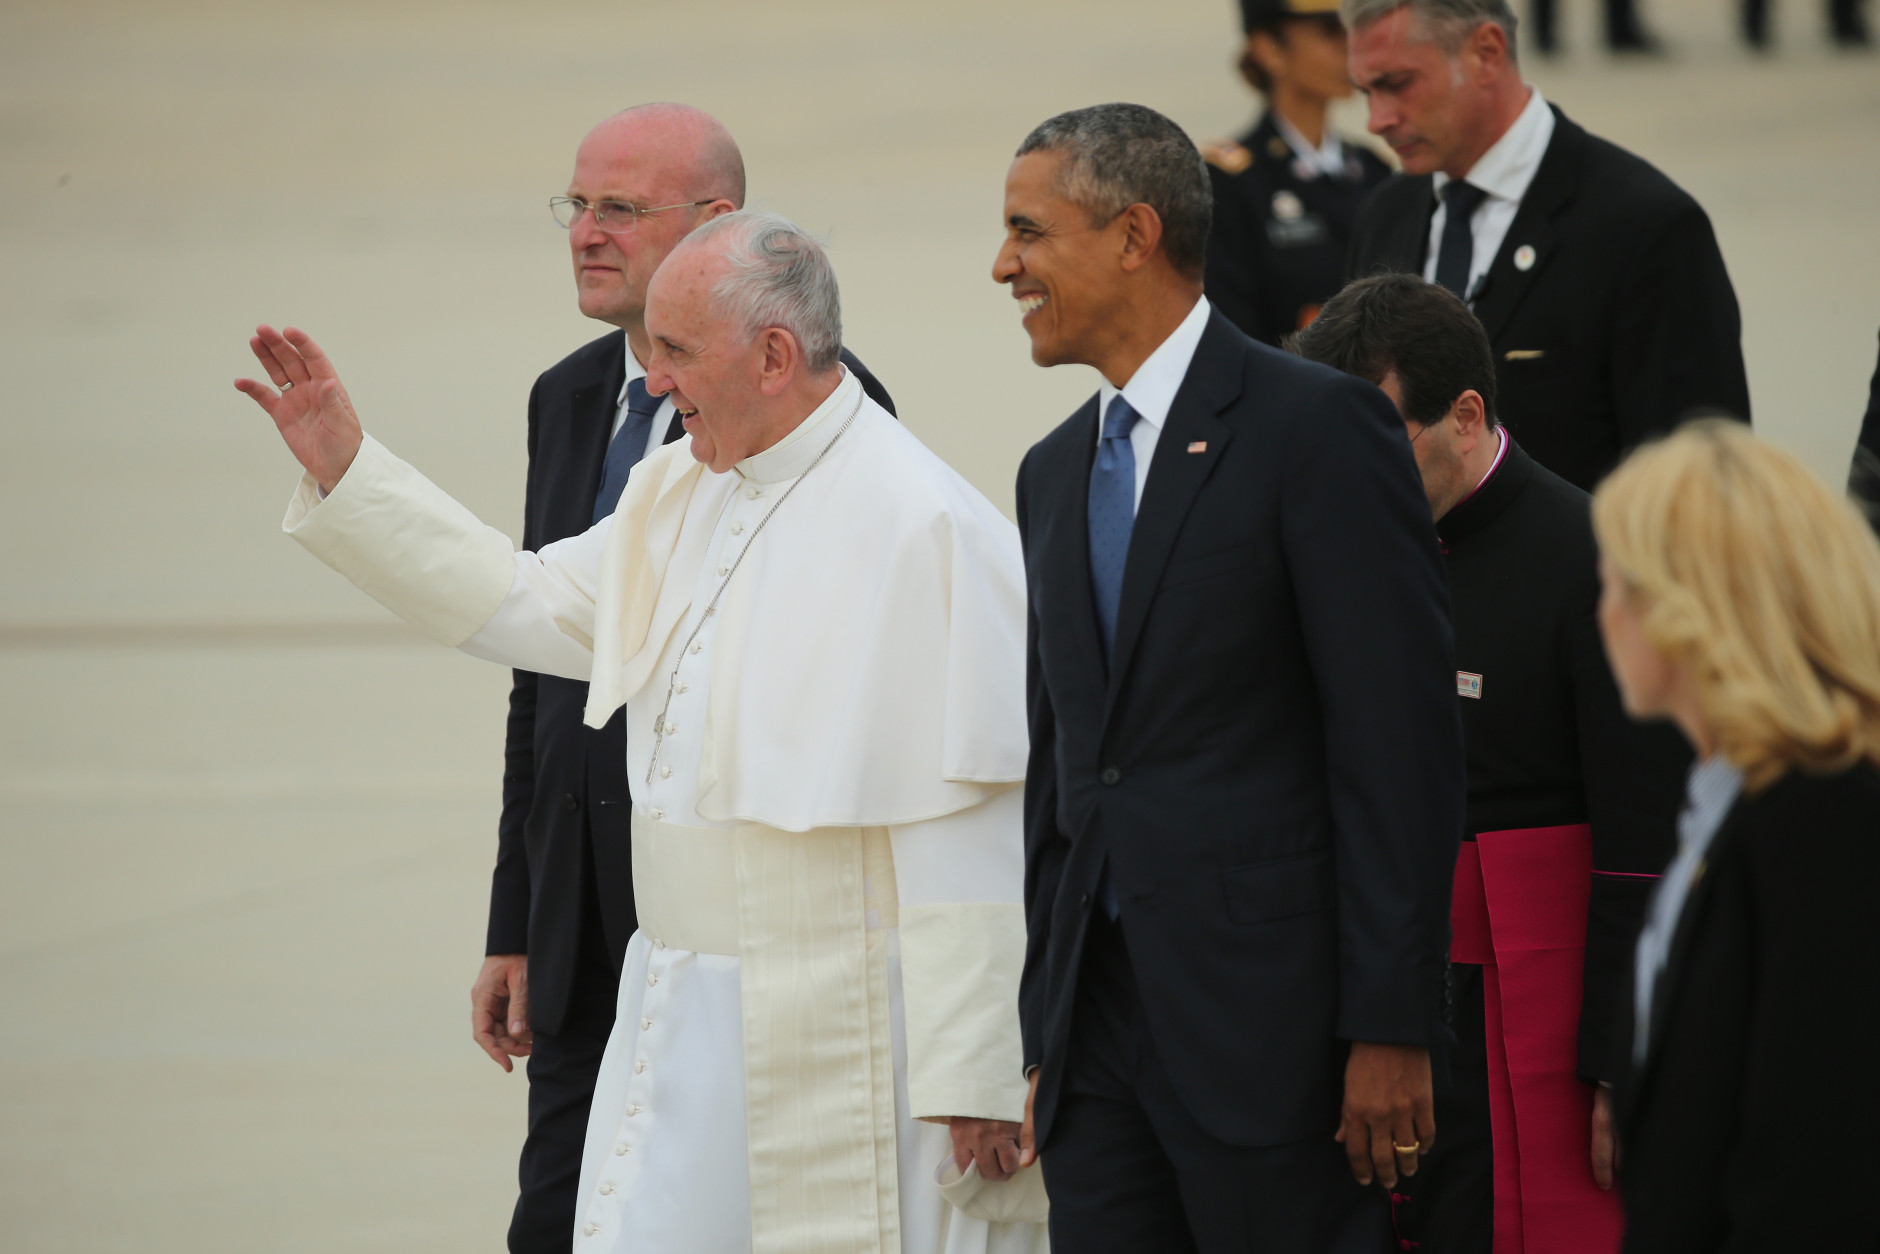 JOINT BASE ANDREWS, MD - SEPTEMBER 22:  Pope Francis is greeted by U.S. President Barack Obama (R), along with first lady Michelle Obama, Vice President Joe Biden and other political and Catholic church leaders after arriving from Cuba September 22, 2015 at Joint Base Andrews, Maryland. Francis will be visiting Washington, New York City and Philadelphia during his first trip to the United States as pope. (Photo by Chip Somodevilla/Getty Images)